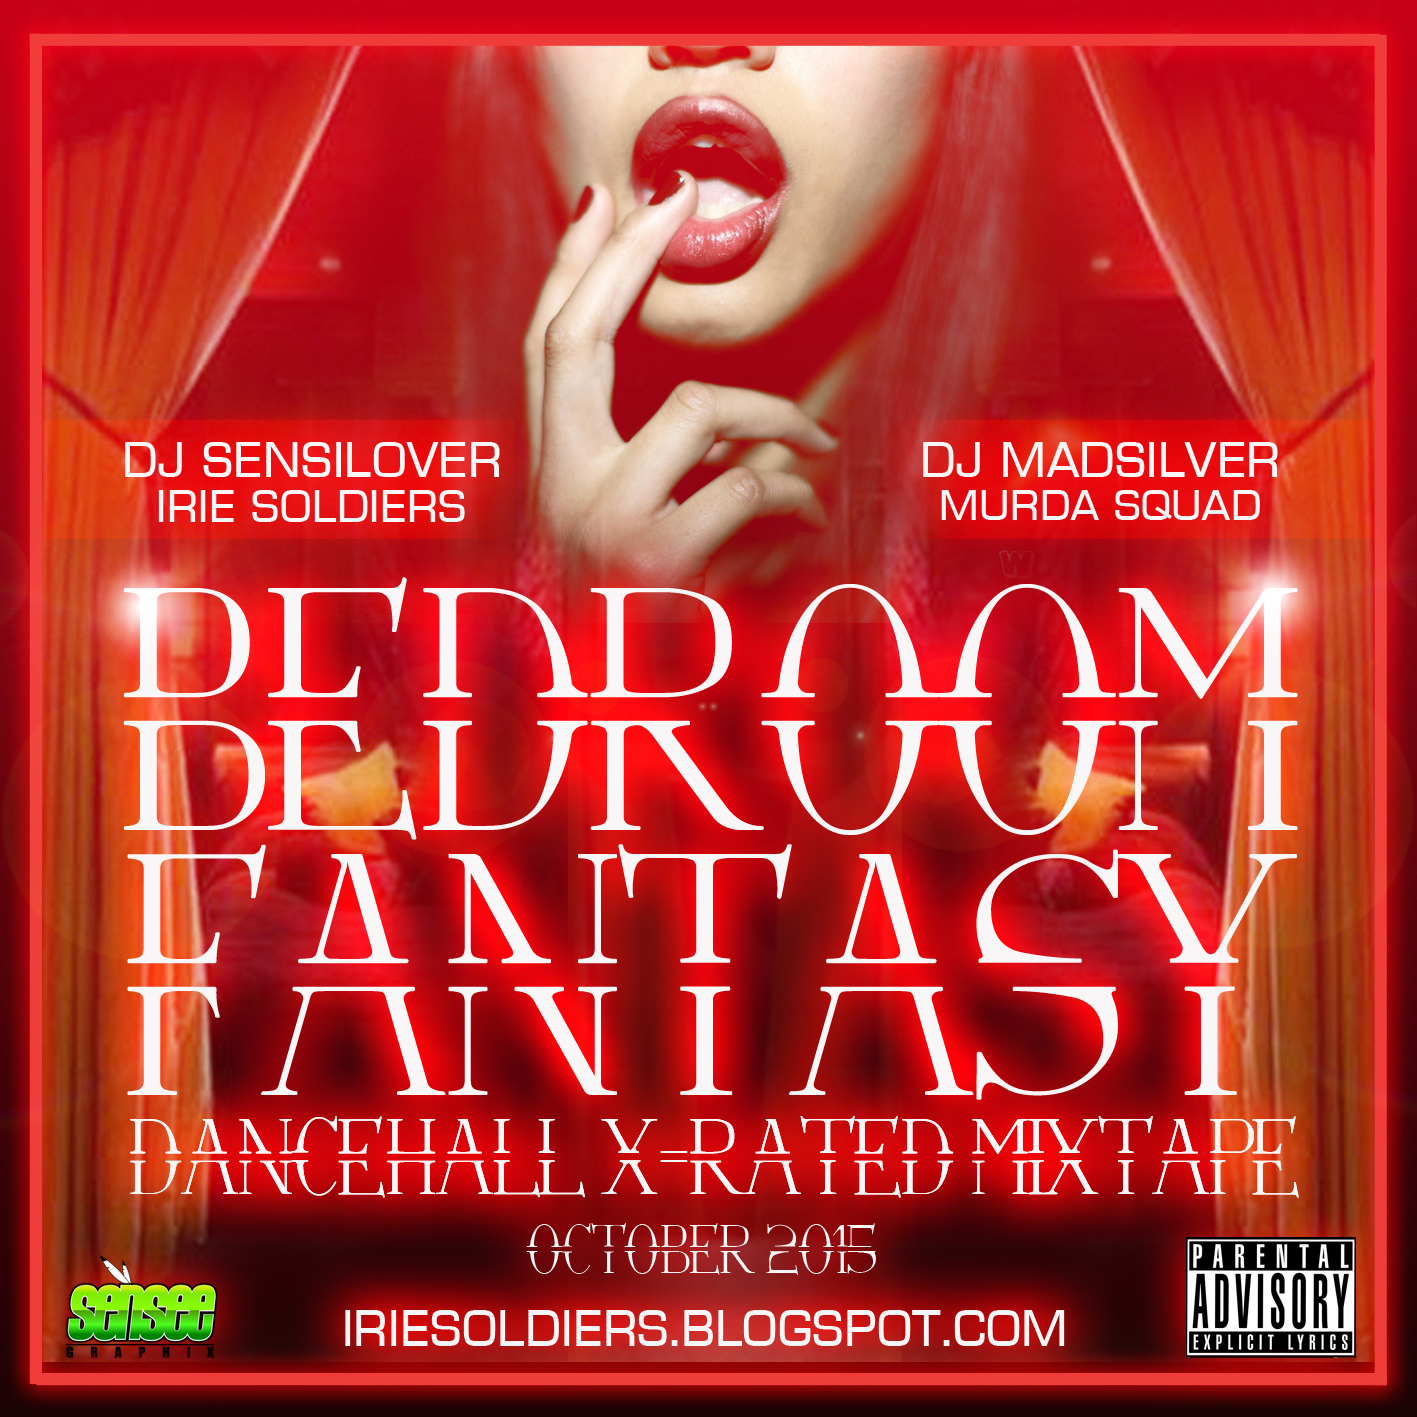 Irie soldiers dancehall reggae mixtapes for Bedroom r b mixtape